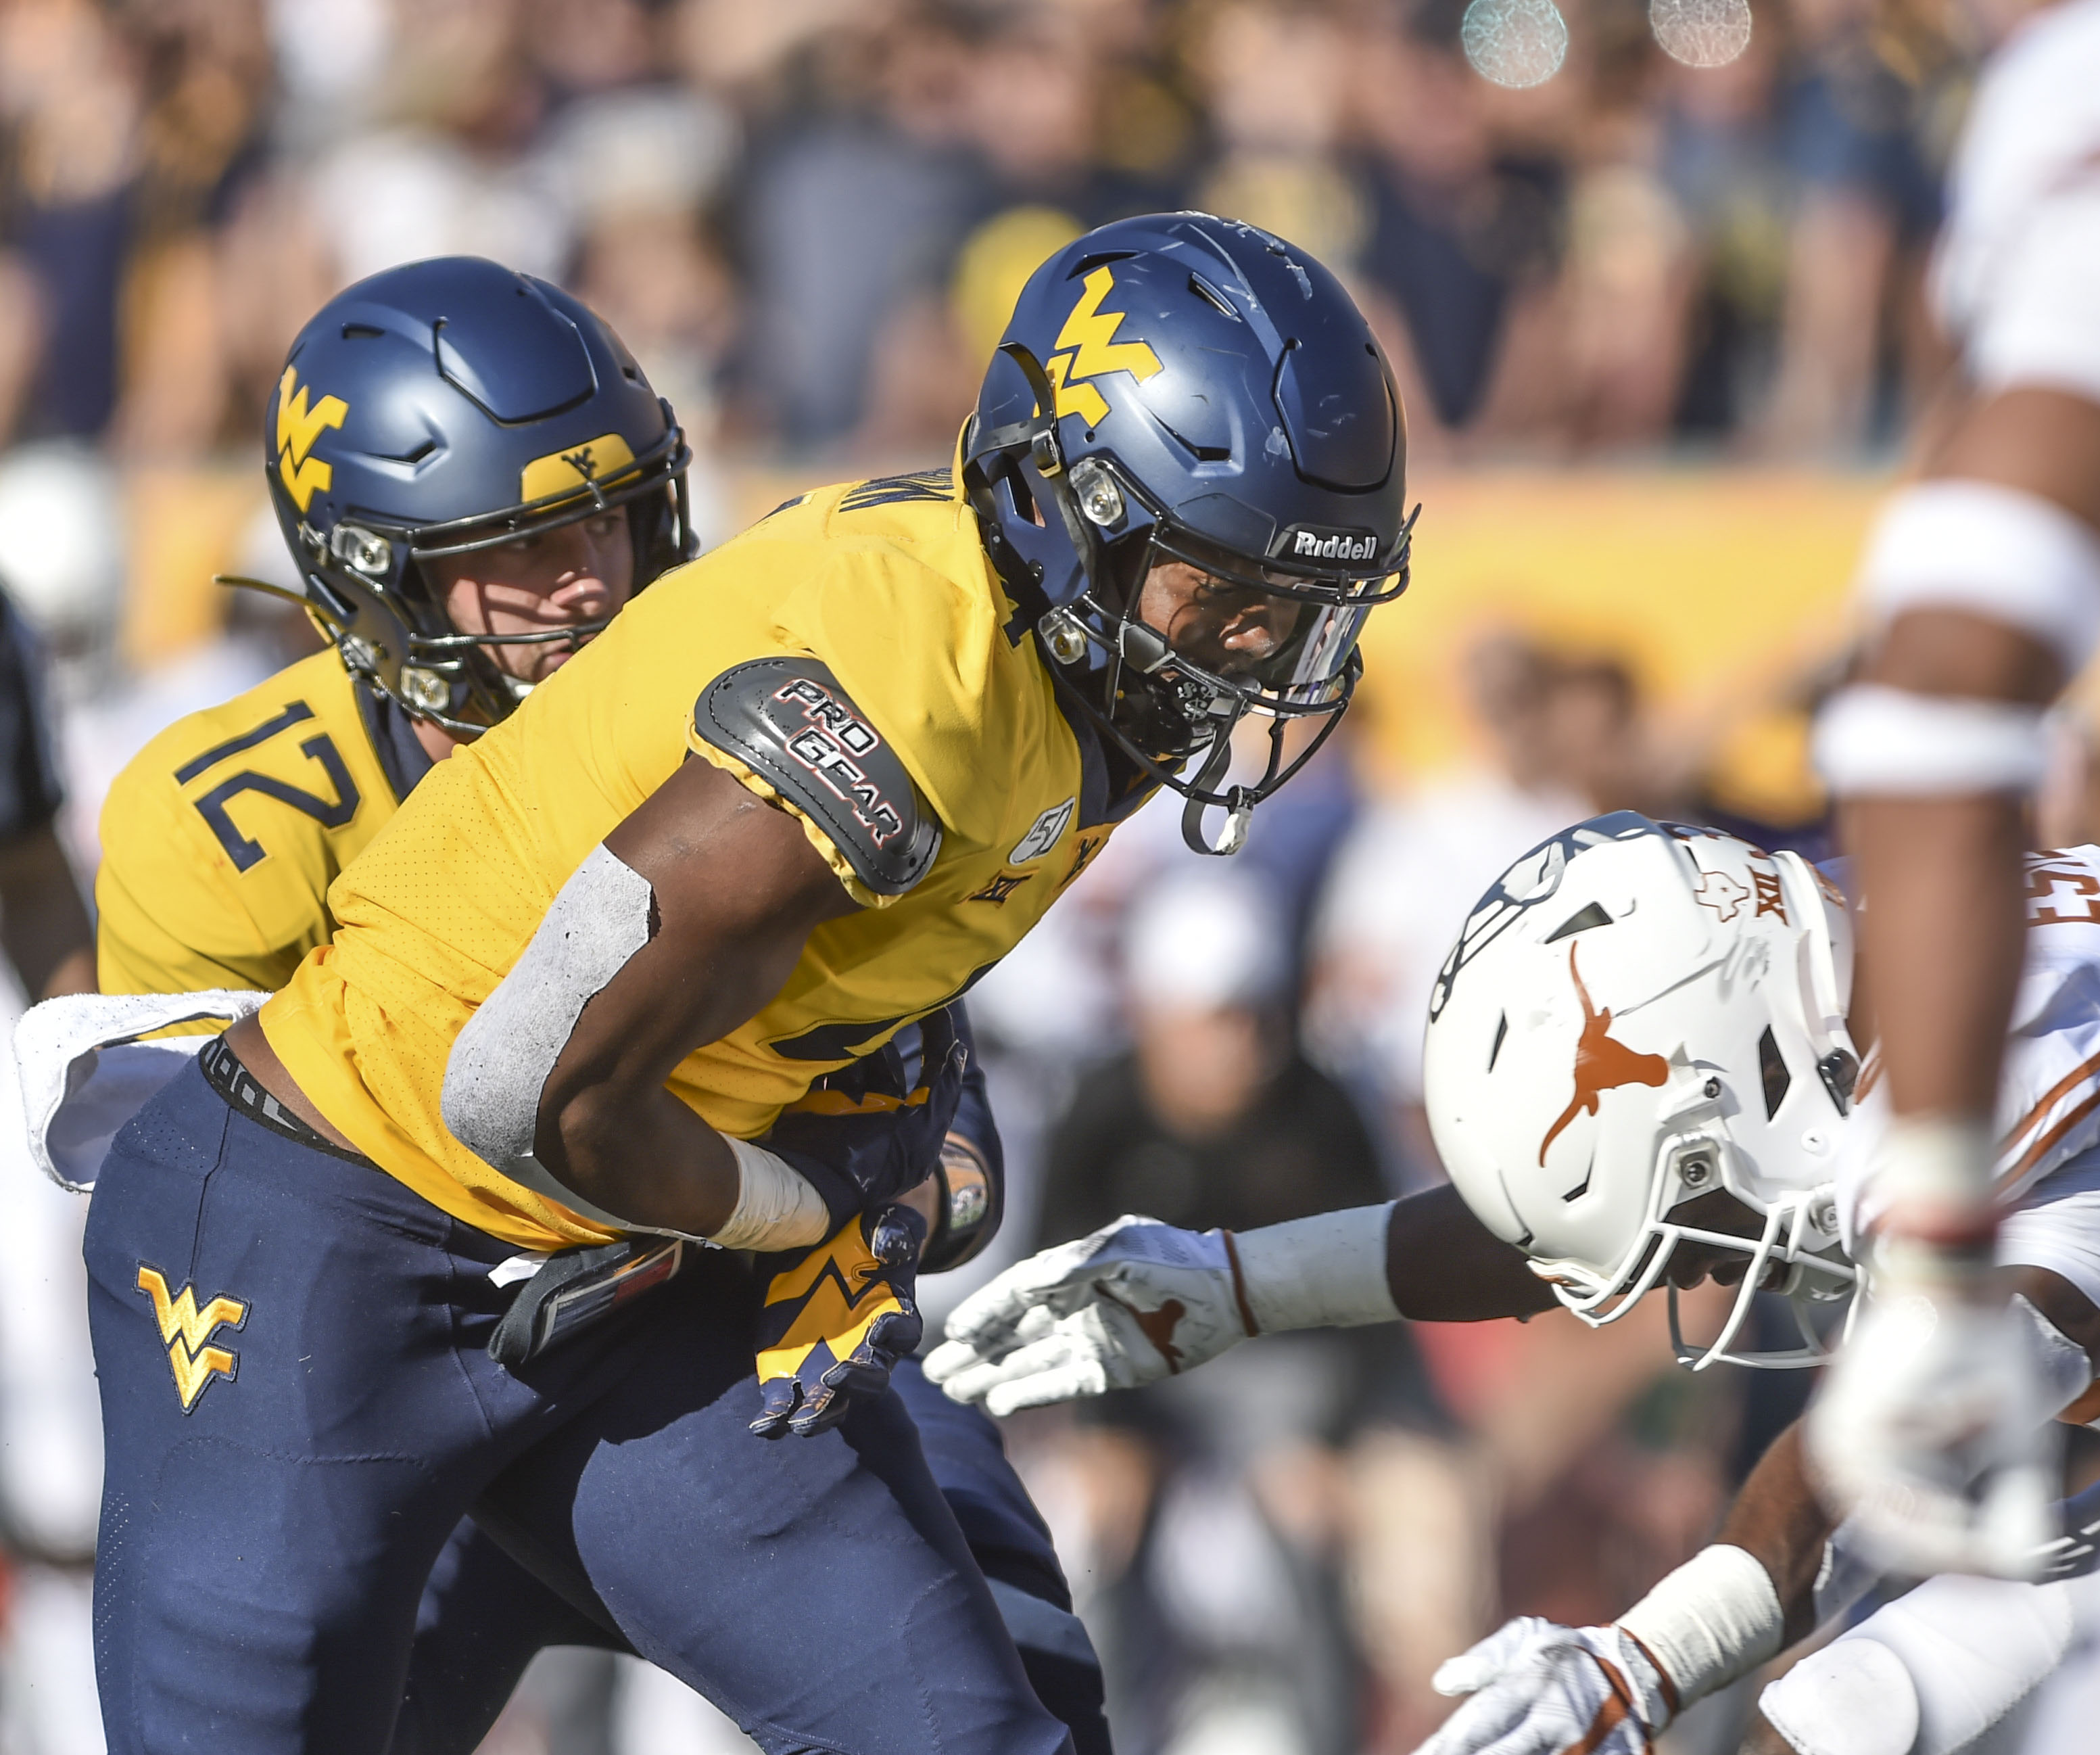 How They Scored Texas 42 West Virginia 31 Dominion Post